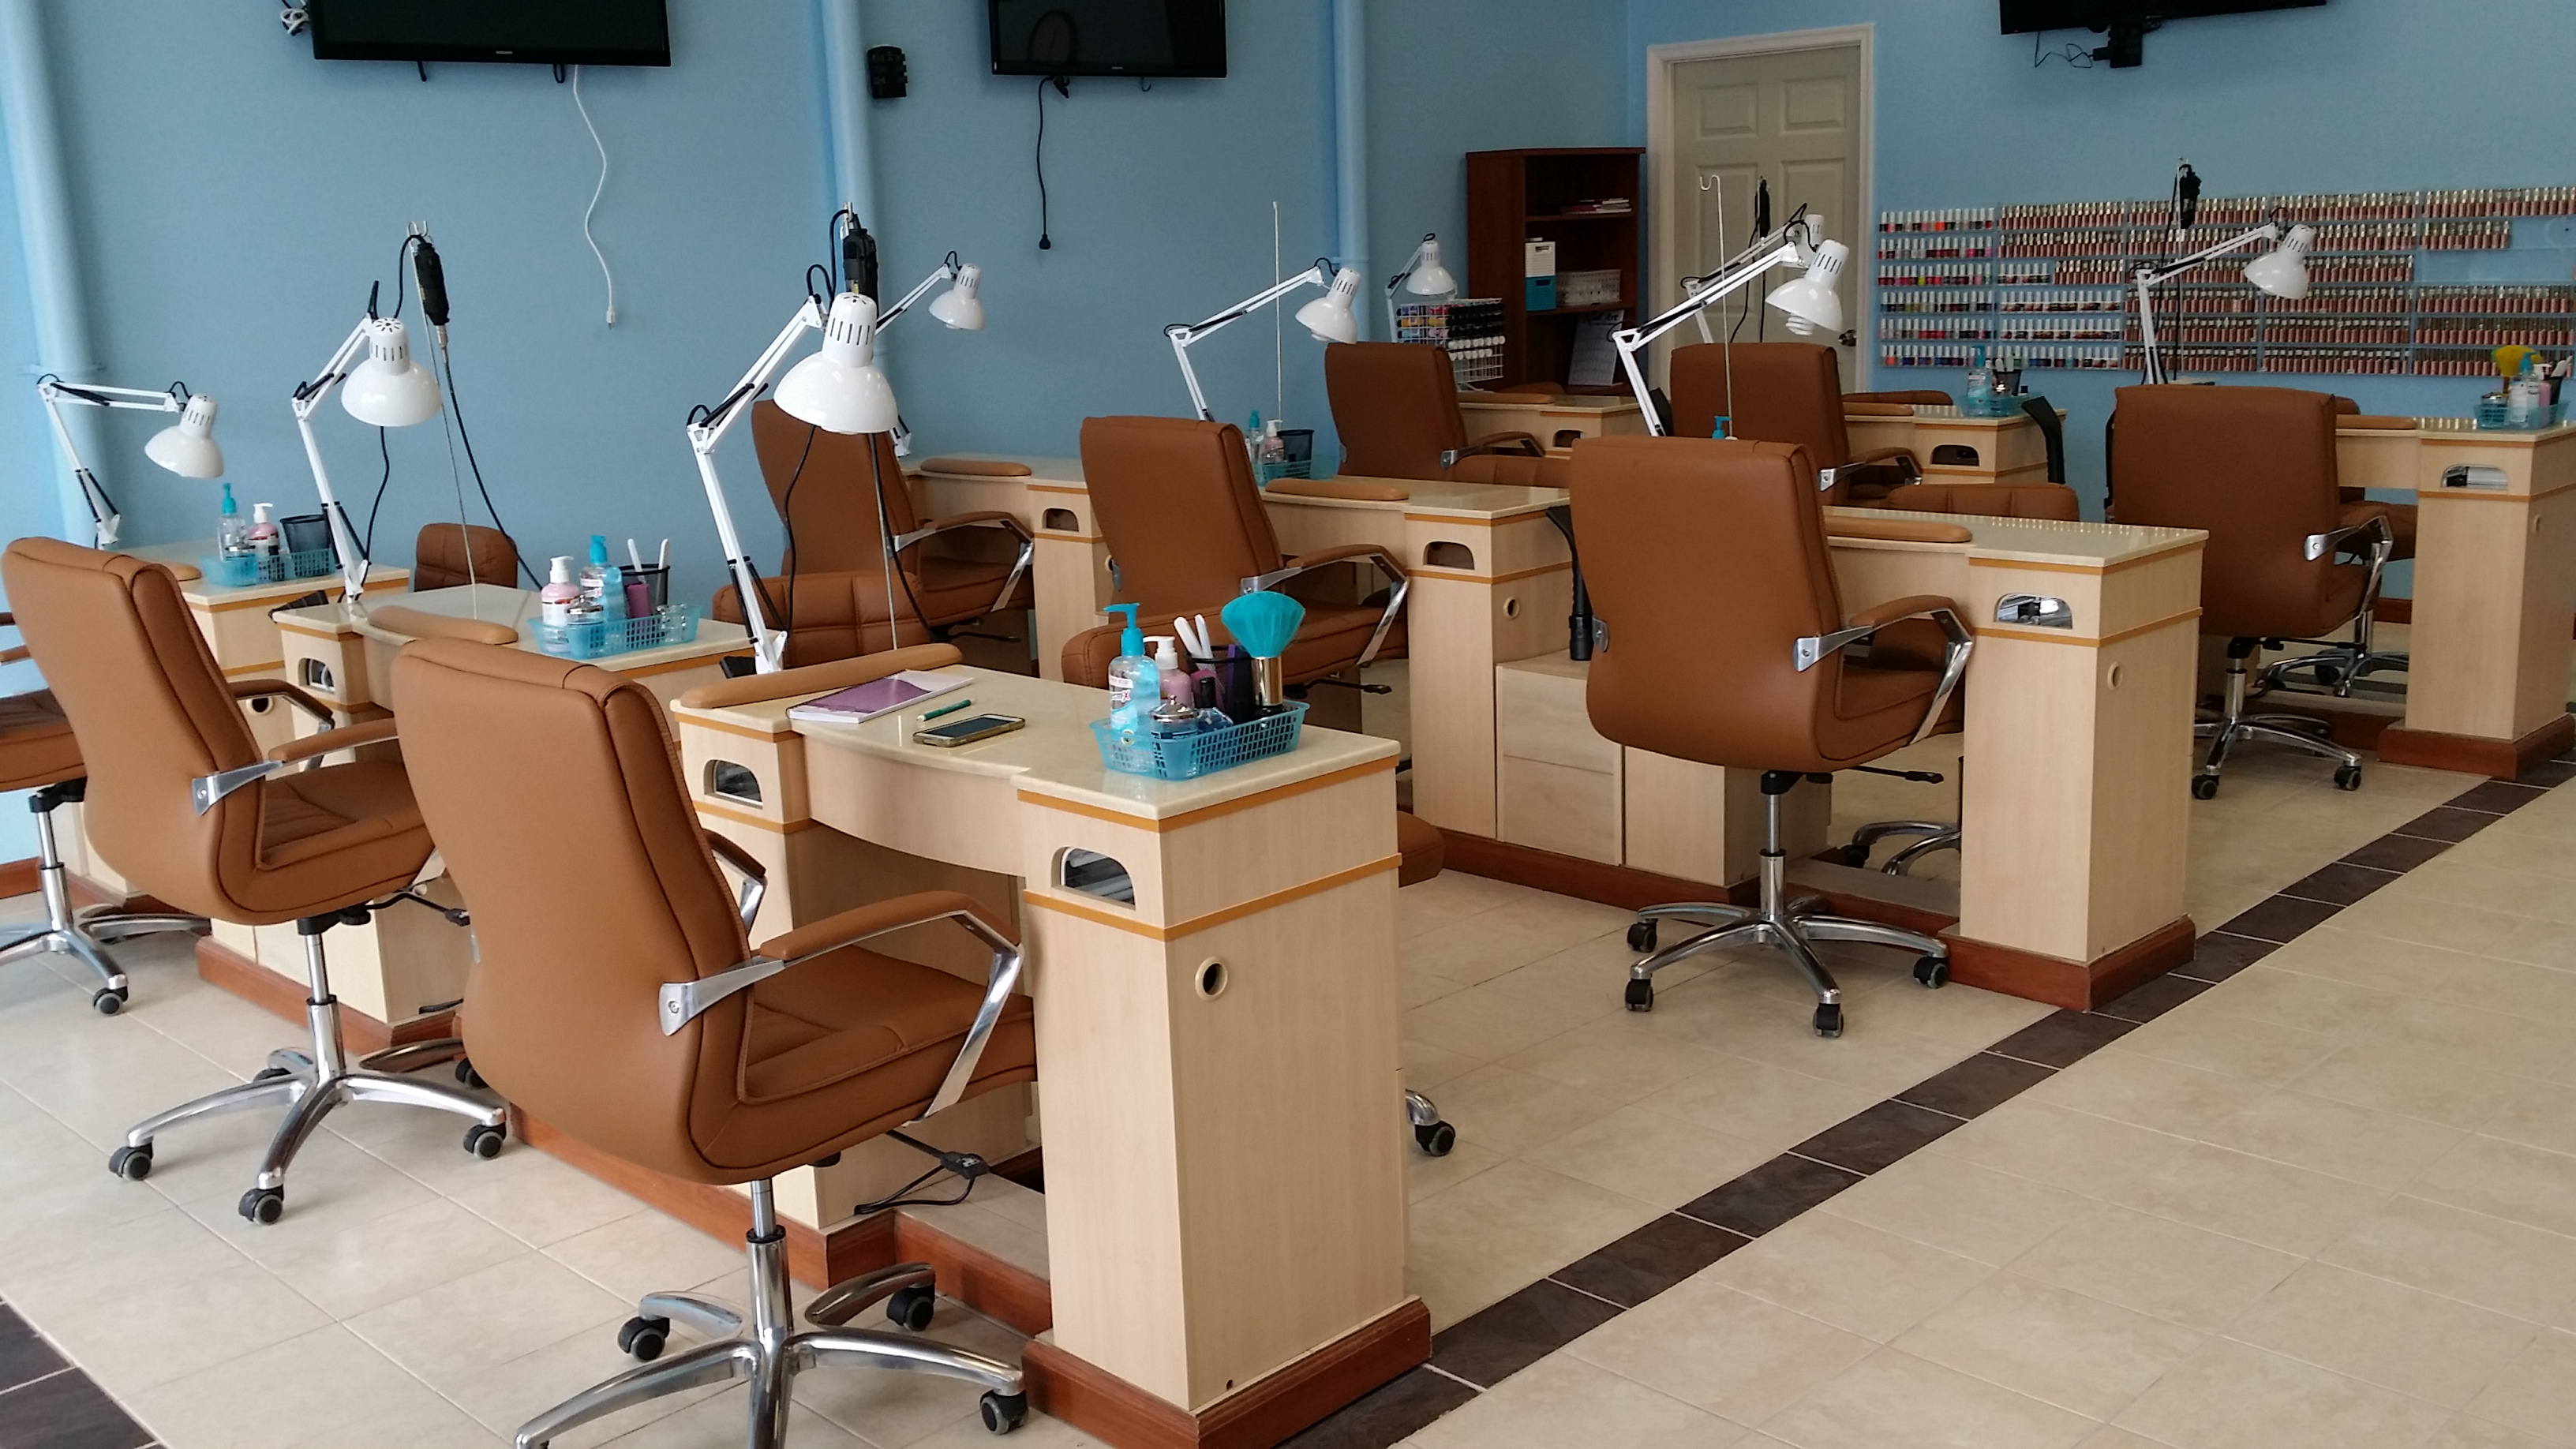 Sally nails pedicure in camp hill pa 717 963 7 for Manicure table with exhaust fan